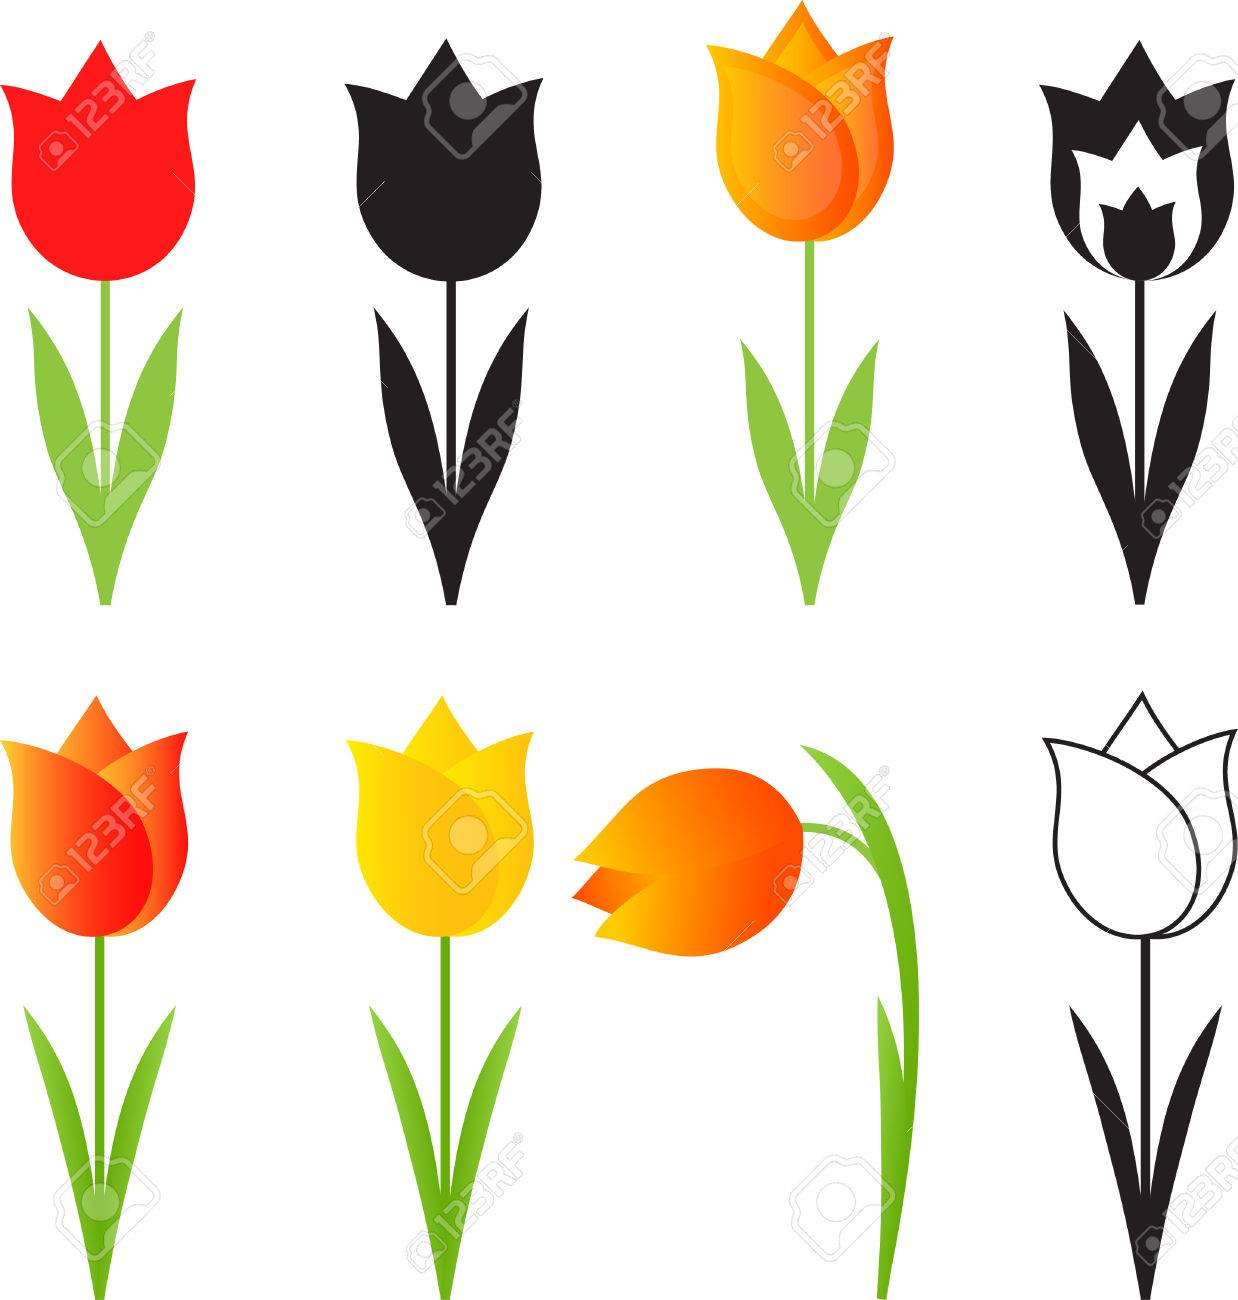 Isolated spring flowers vectors tulip vectors royalty free cliparts isolated spring flowers vectors tulip vectors stock vector 37426753 mightylinksfo Gallery